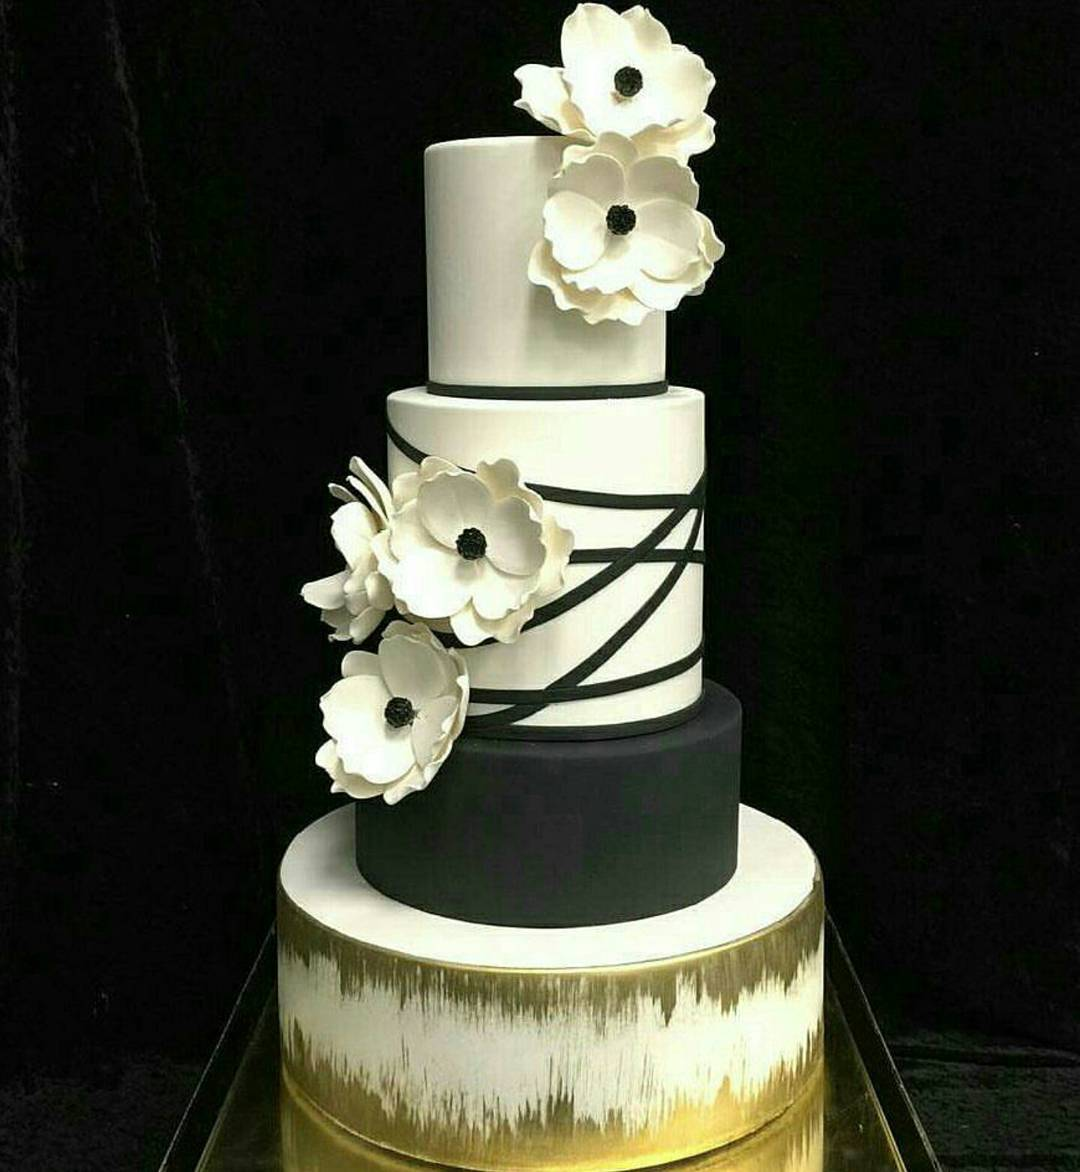 Fabulous Black & White New Year Party Cake